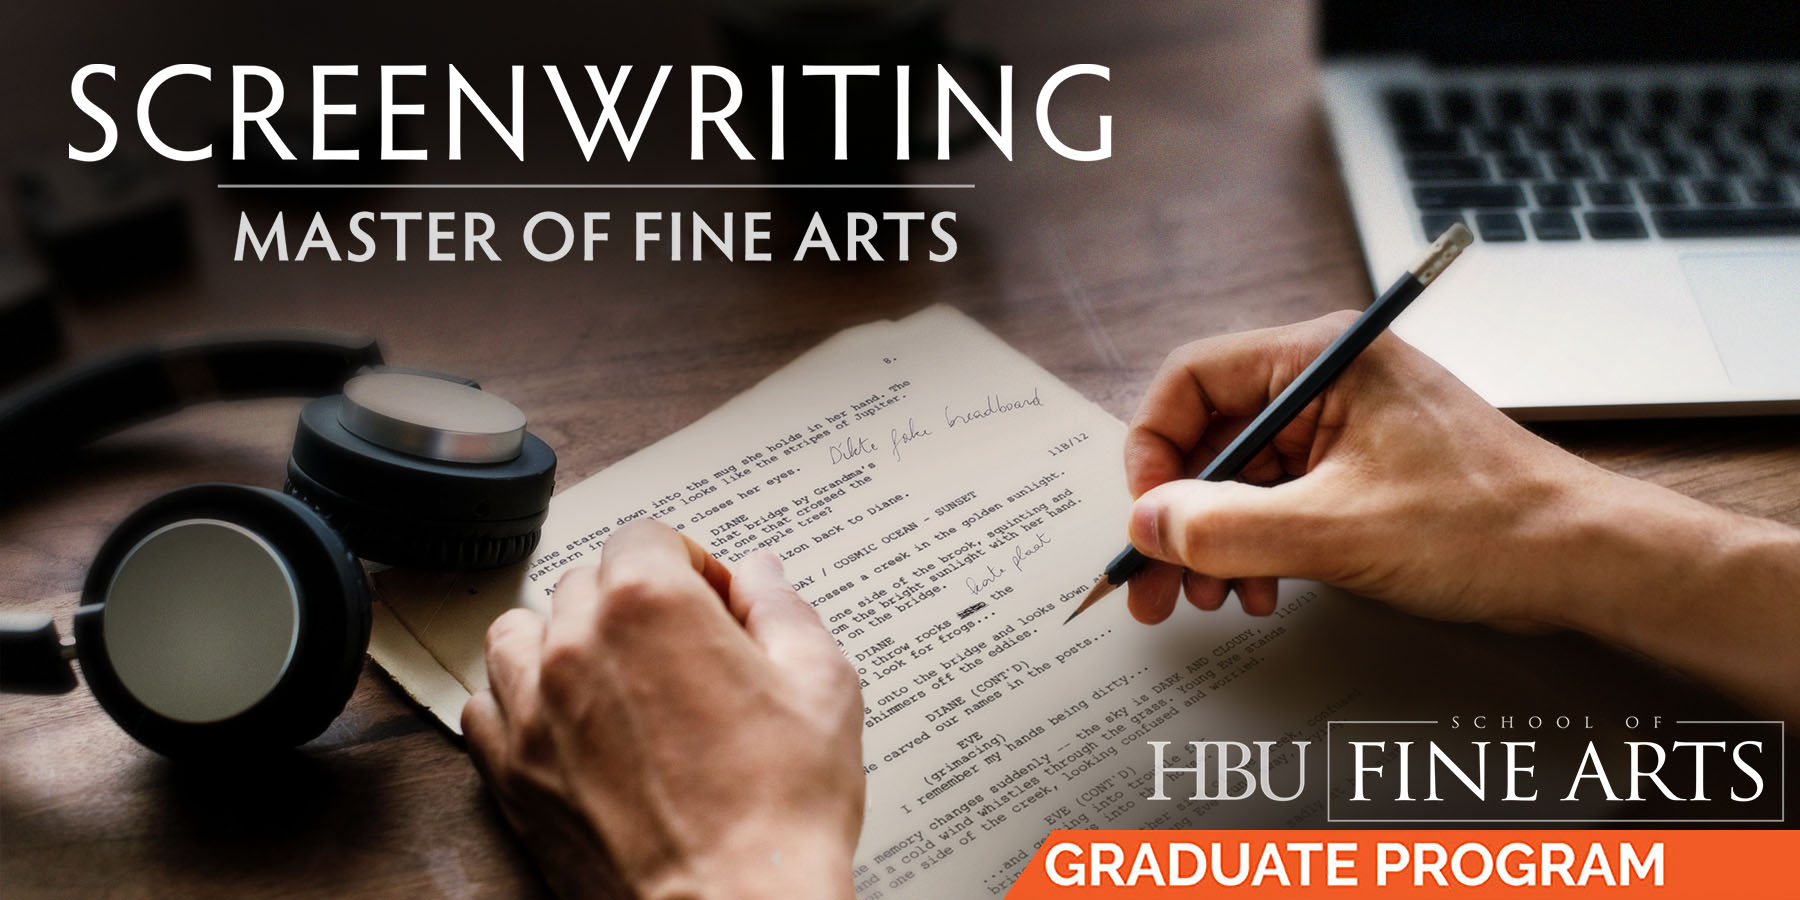 Master of Fine Arts in Screenwriting